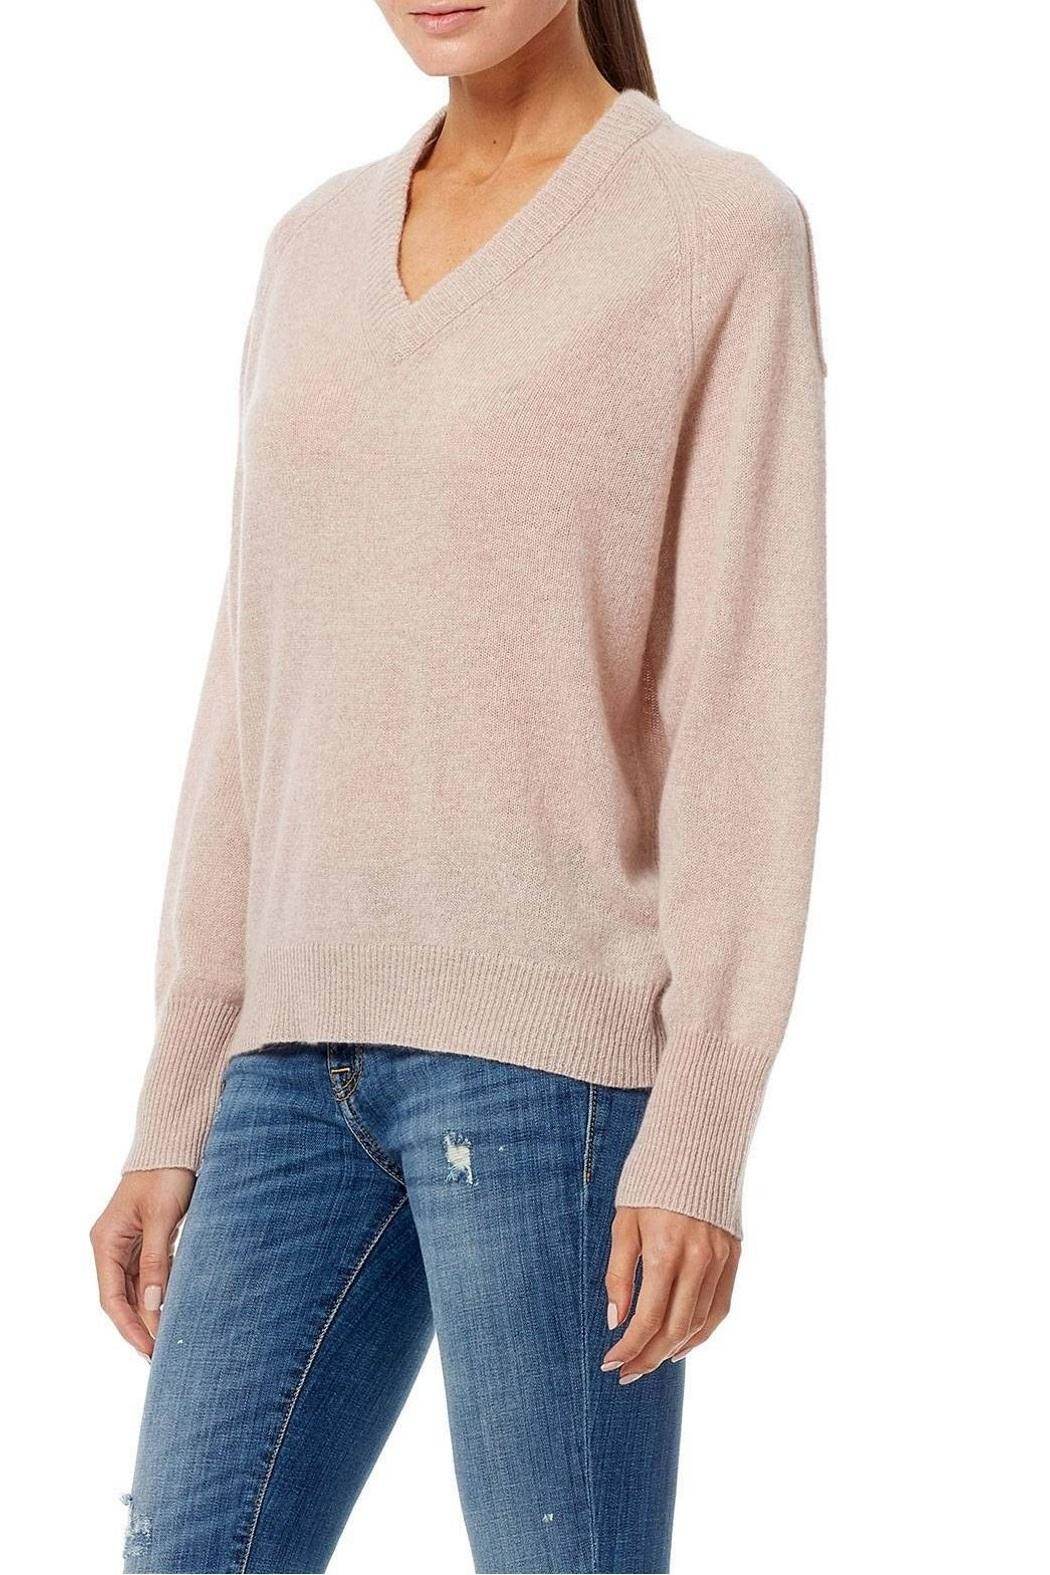 360 Cashmere Danielle Sweater - Front Full Image